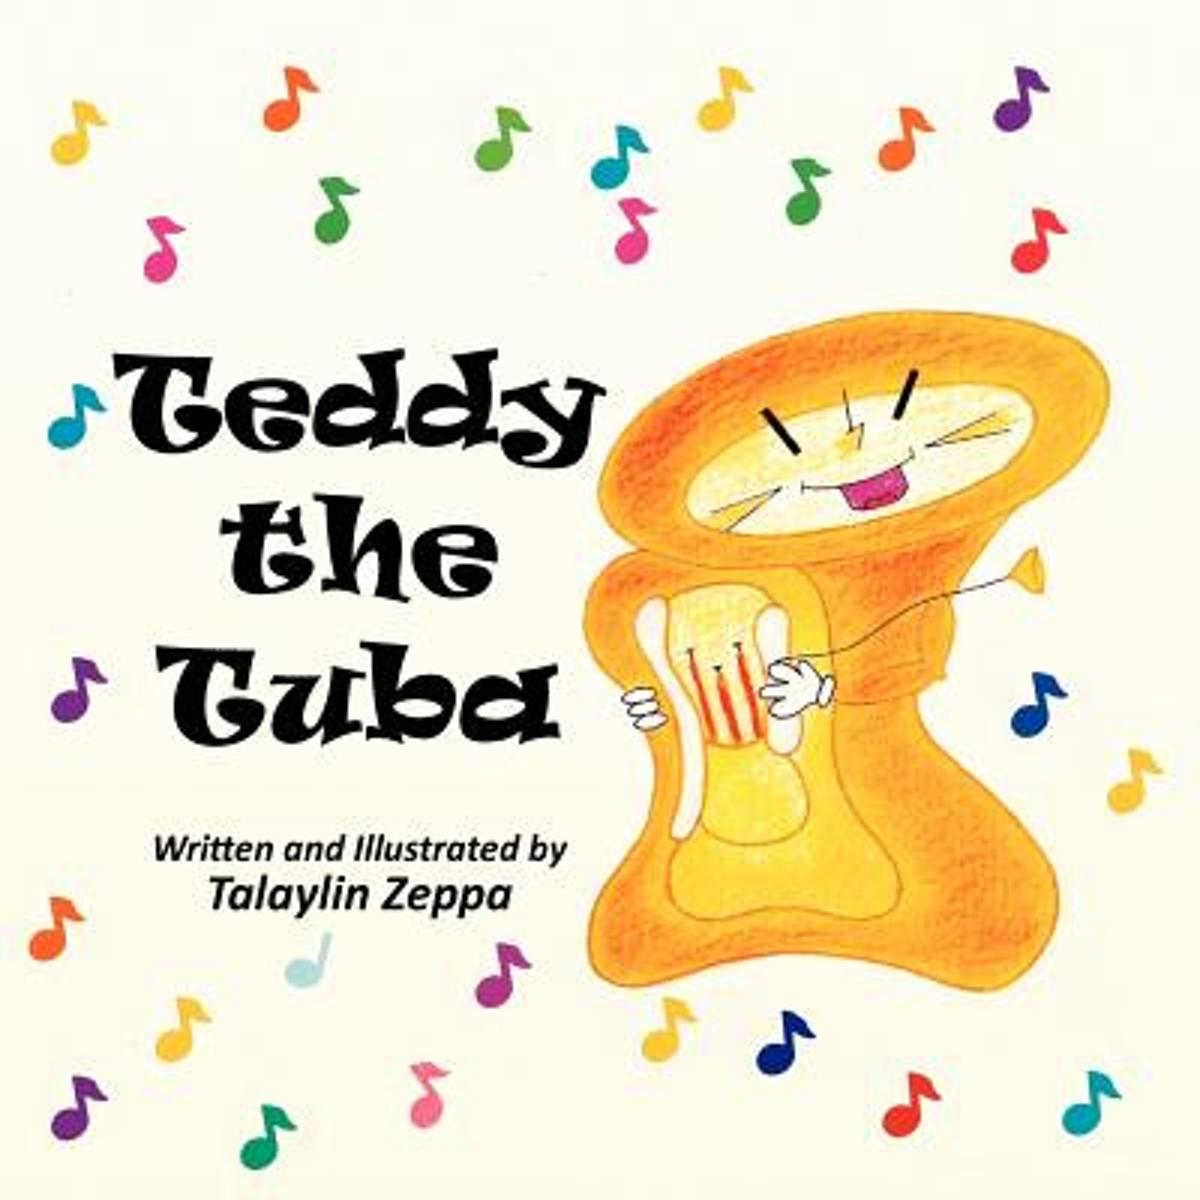 Teddy the Tuba